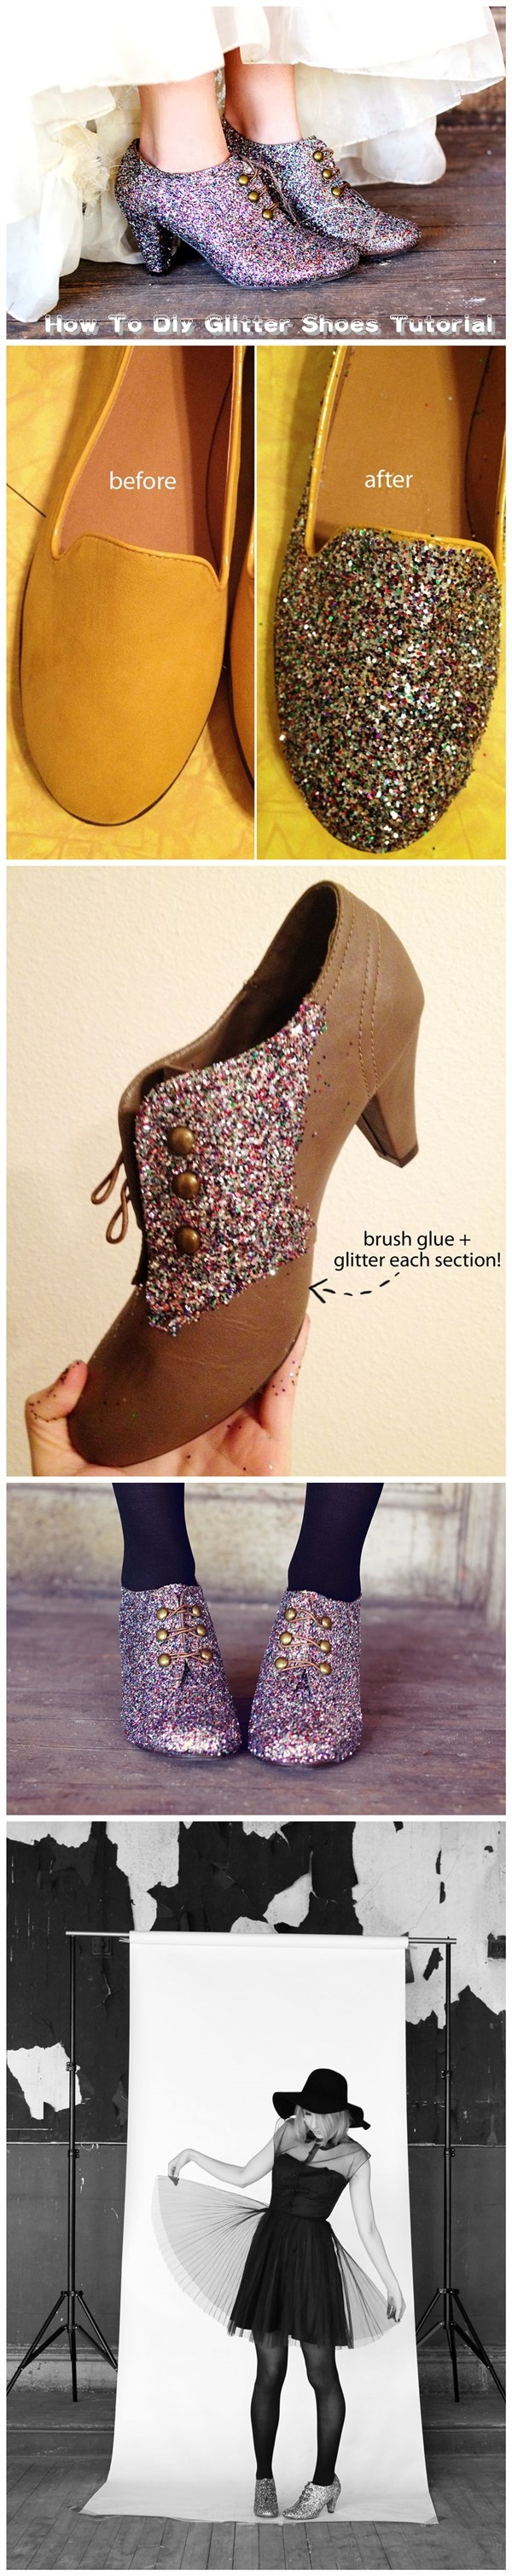 How To Diy Glitter Shoes Tutorial